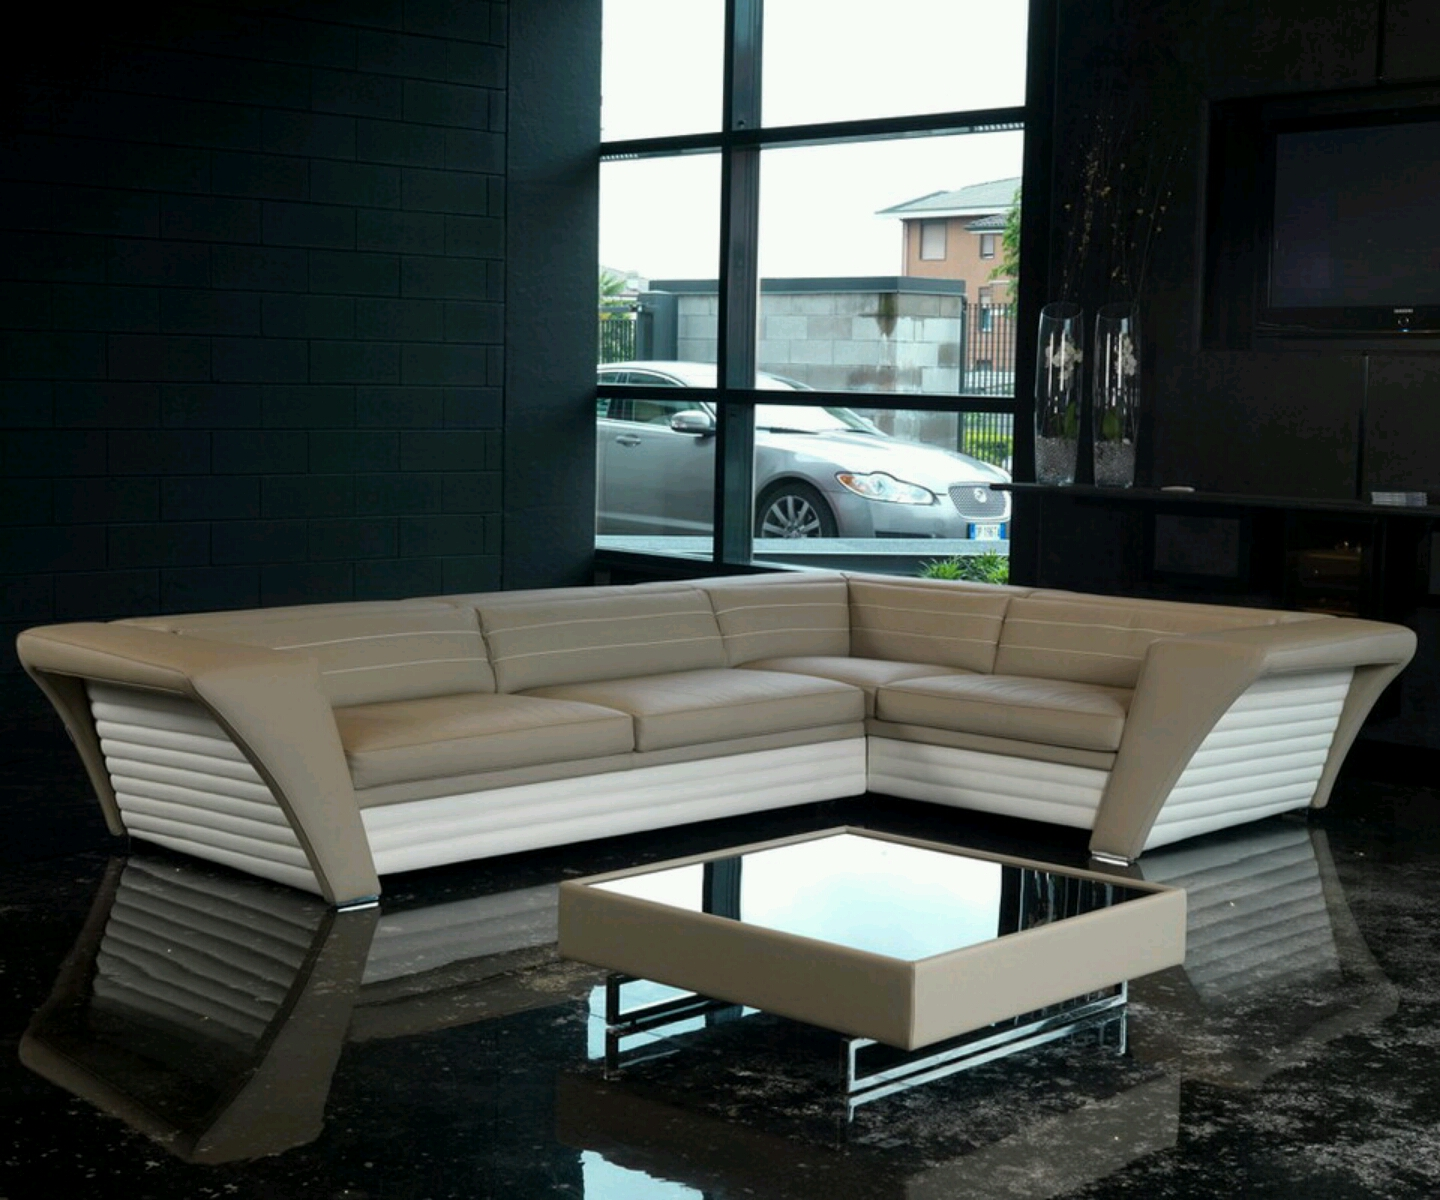 Modern cabinet design modern sofa new designs - Furniture design modern ...